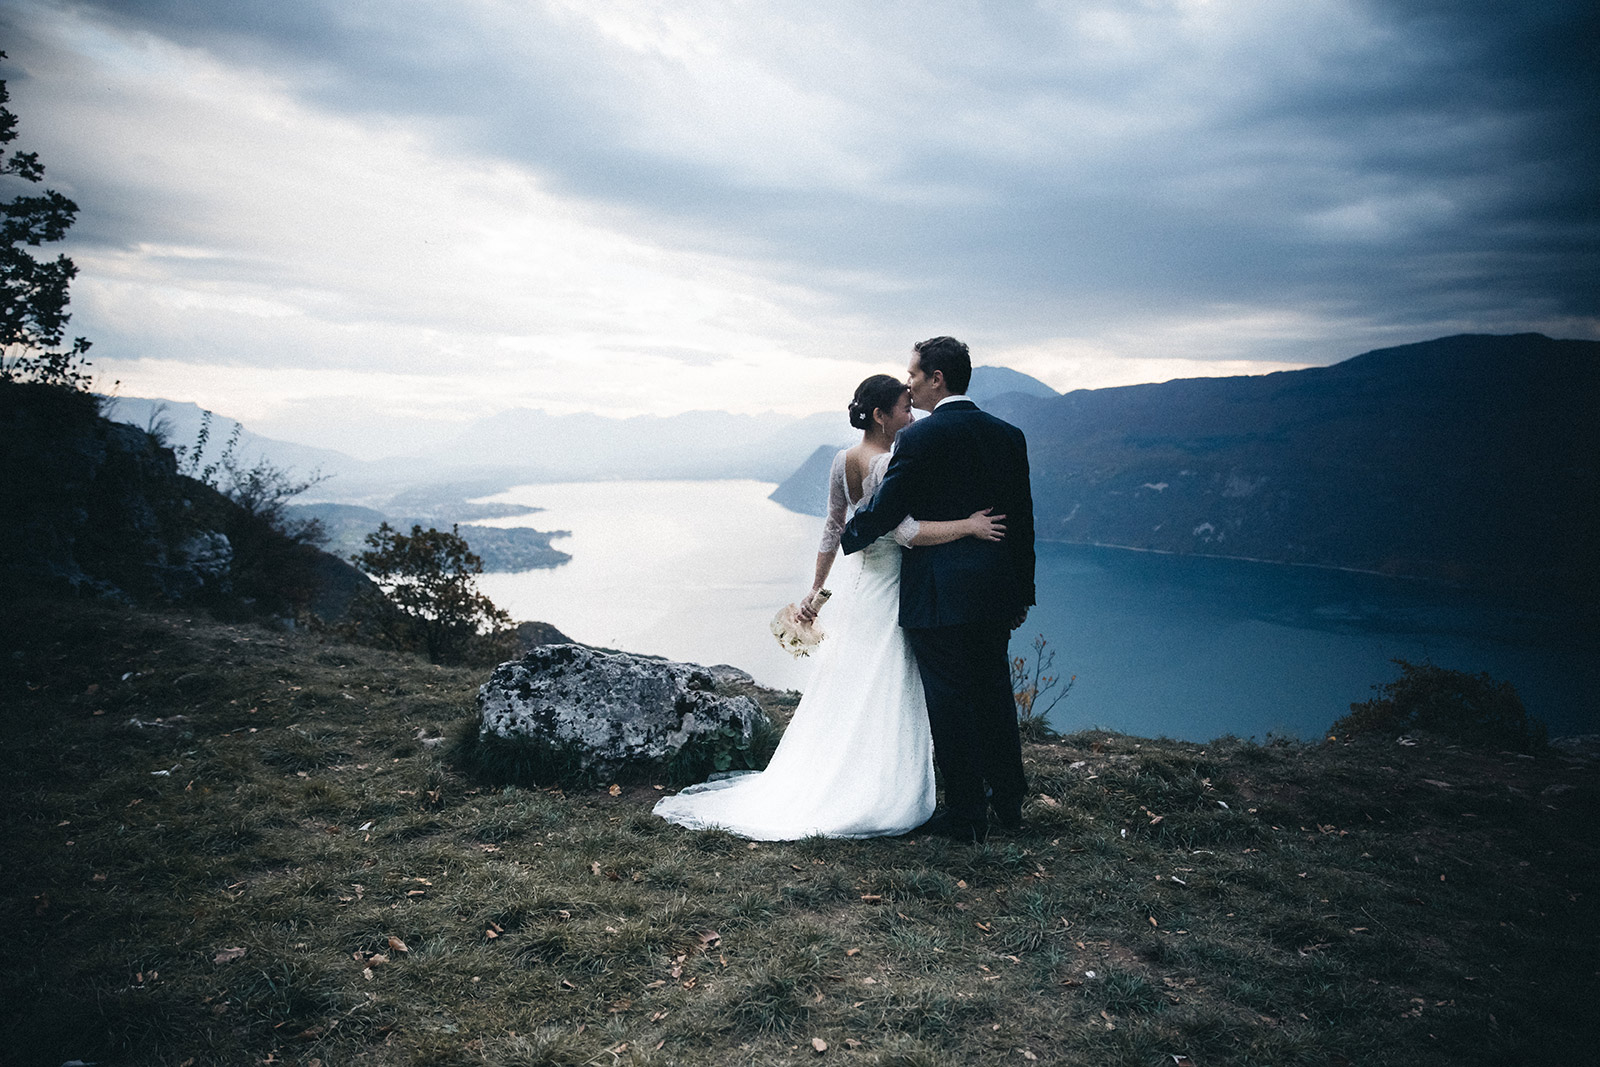 Intimate wedding photographer Aix les Bains